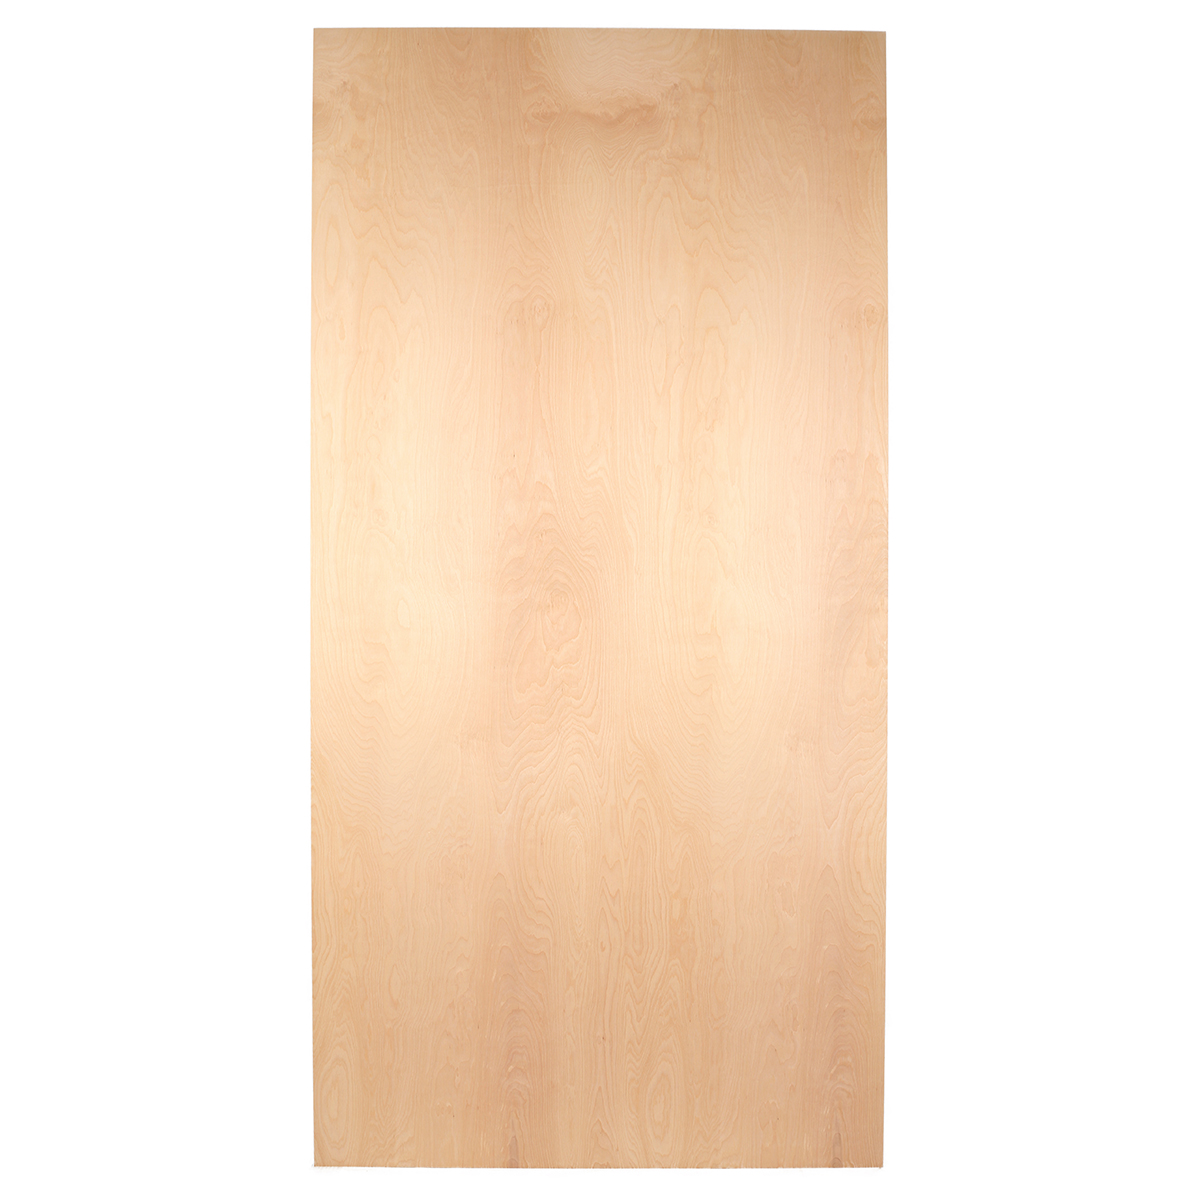 Birch Cabinet Grade Plywood (MDF core 48 1/2 x 96 1/2 sheet  #B86A13 1200x1200